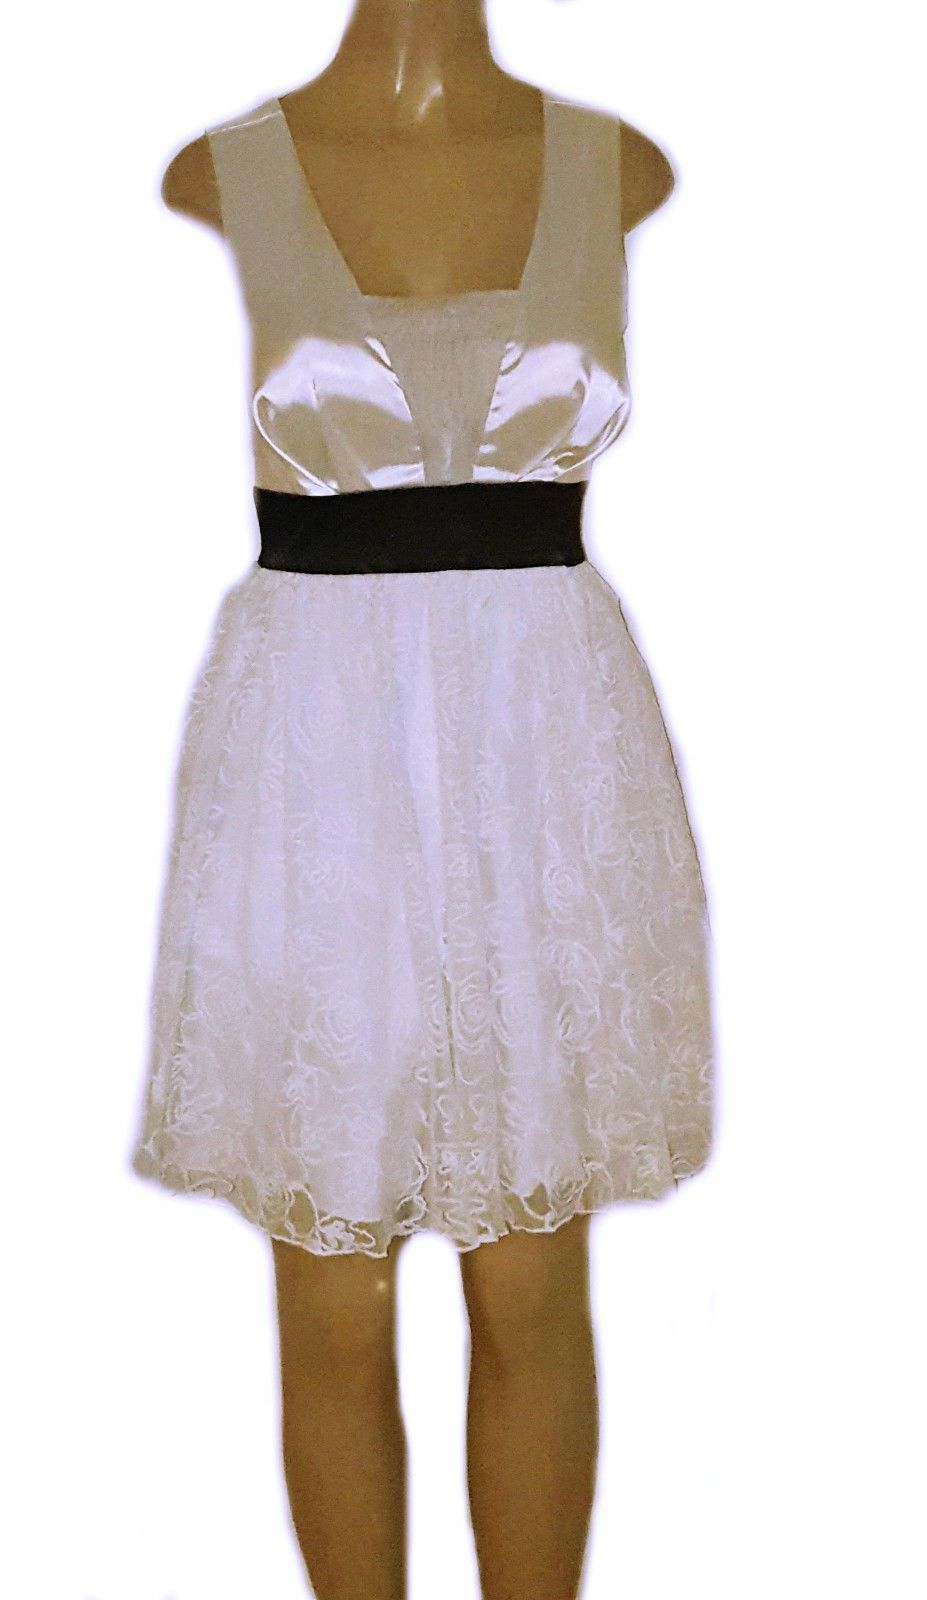 Primary image for Sleeveless Cut-out BackTulle Overlay Lace Skirt Fit & Flare Skater Dress WHITE M